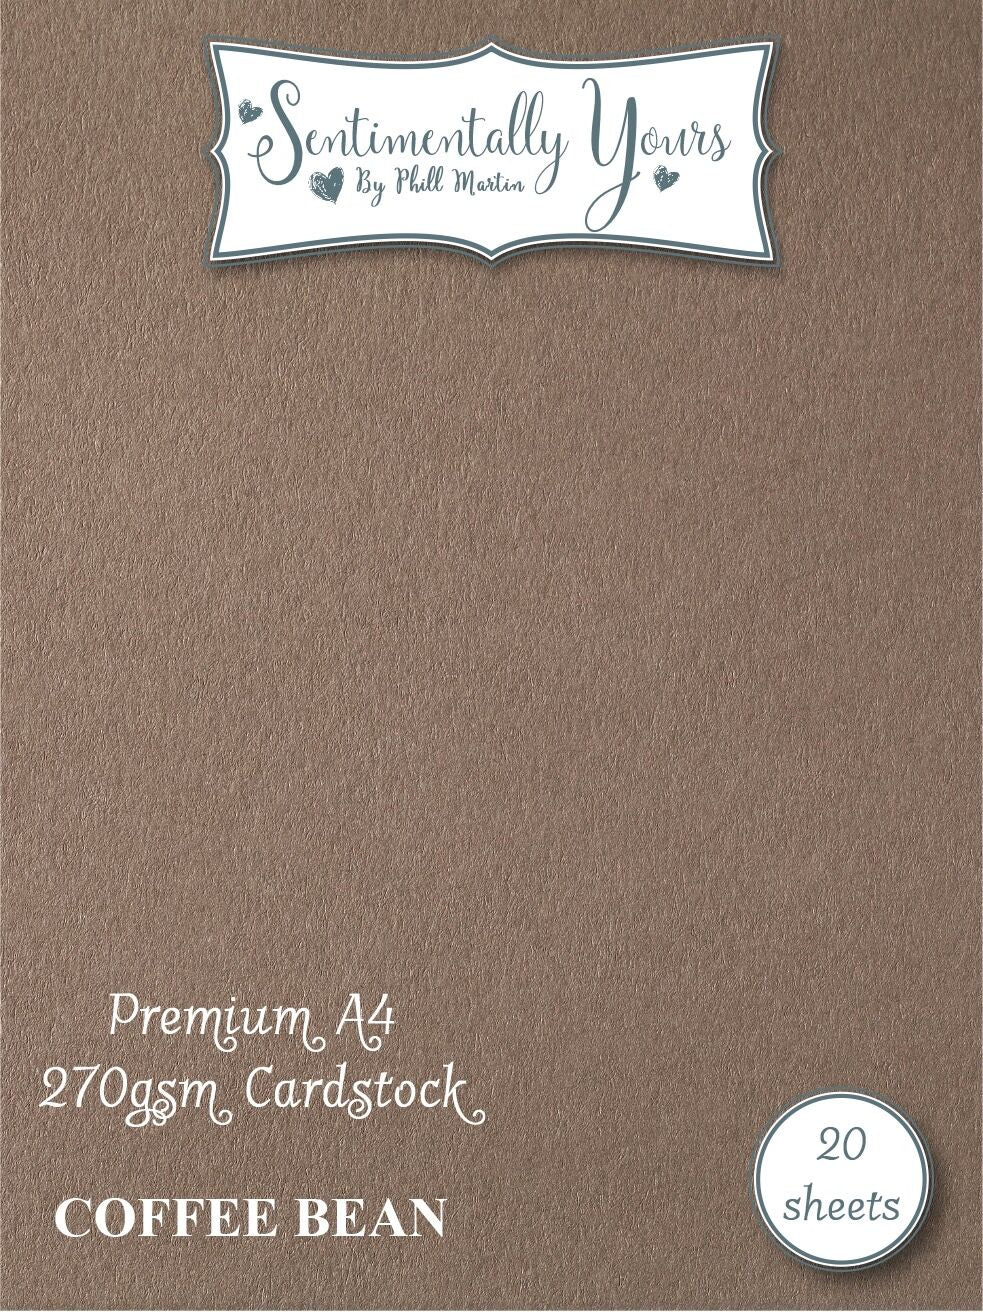 Phill Martin Sentimentally Yours Premium Cardstock - Coffee Bean